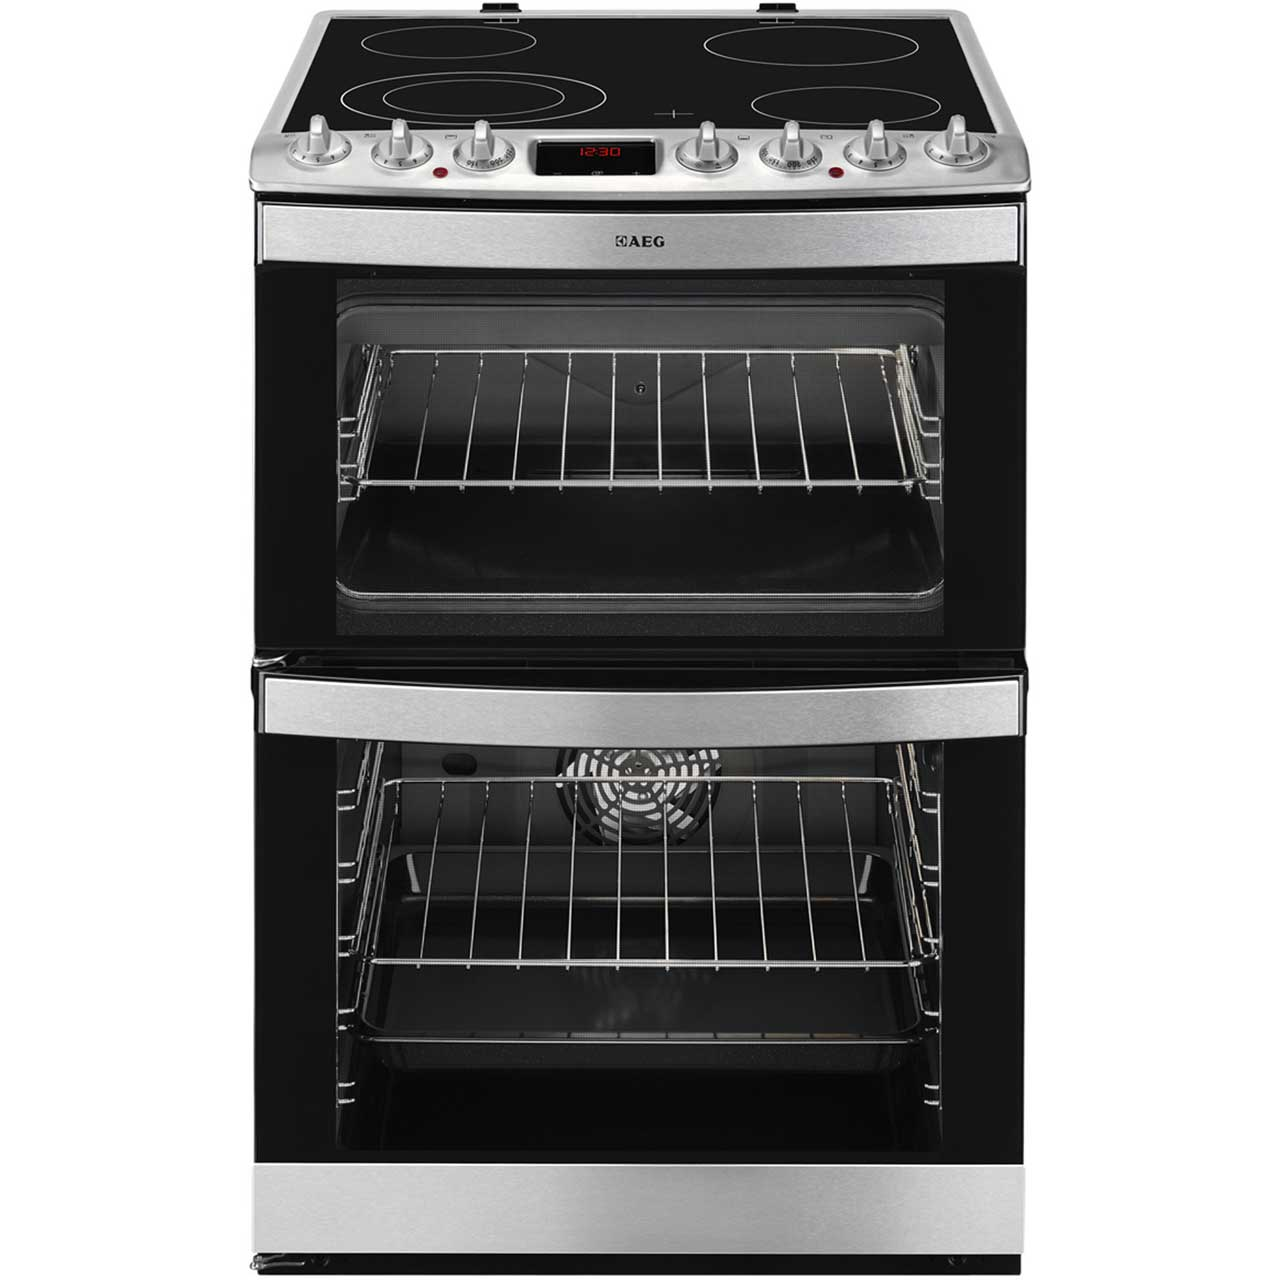 AEG 47102V-MN 60cm Electric Double Oven Cooker With Ceramic Hob Stainless Steel